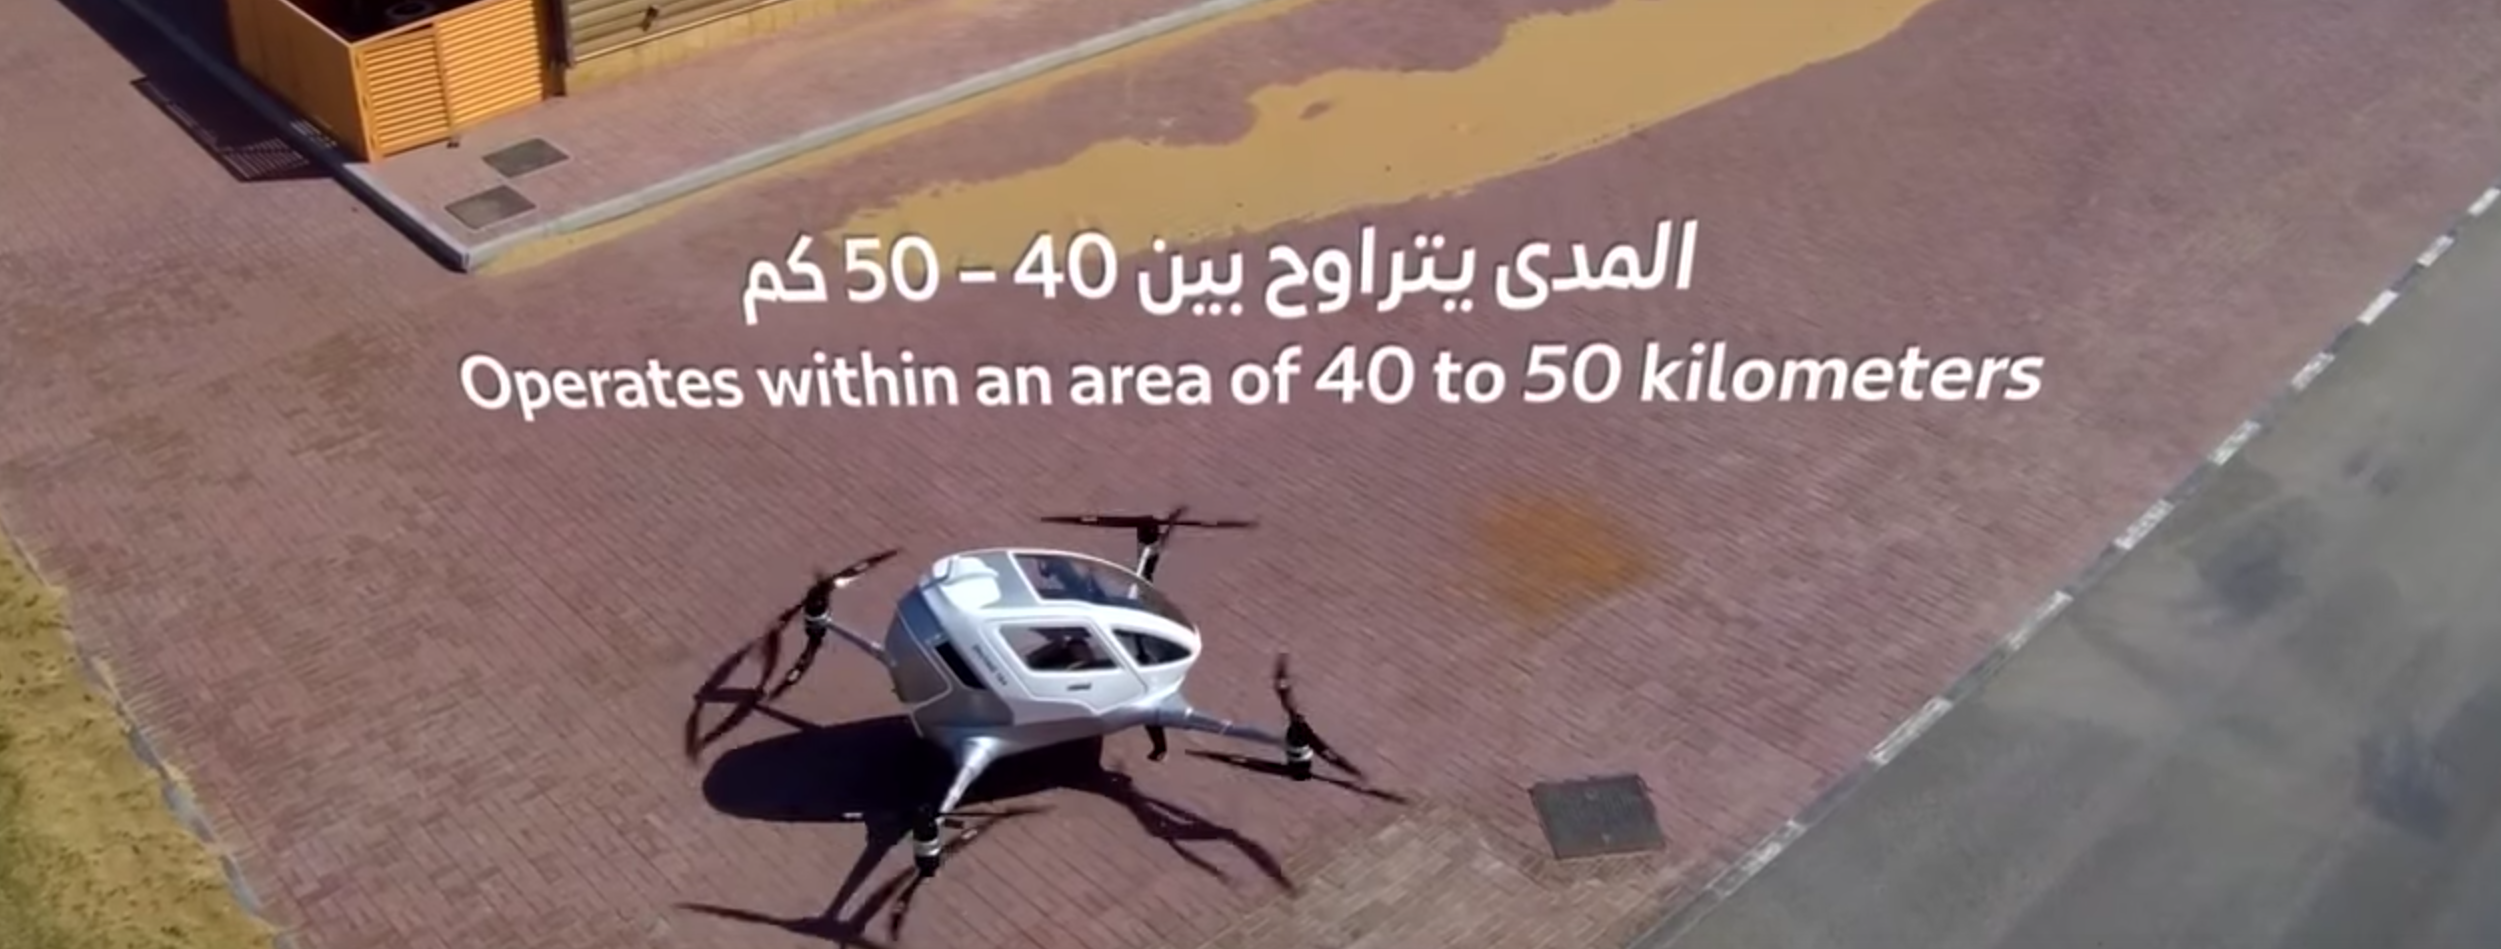 Drone taxi for Dubai